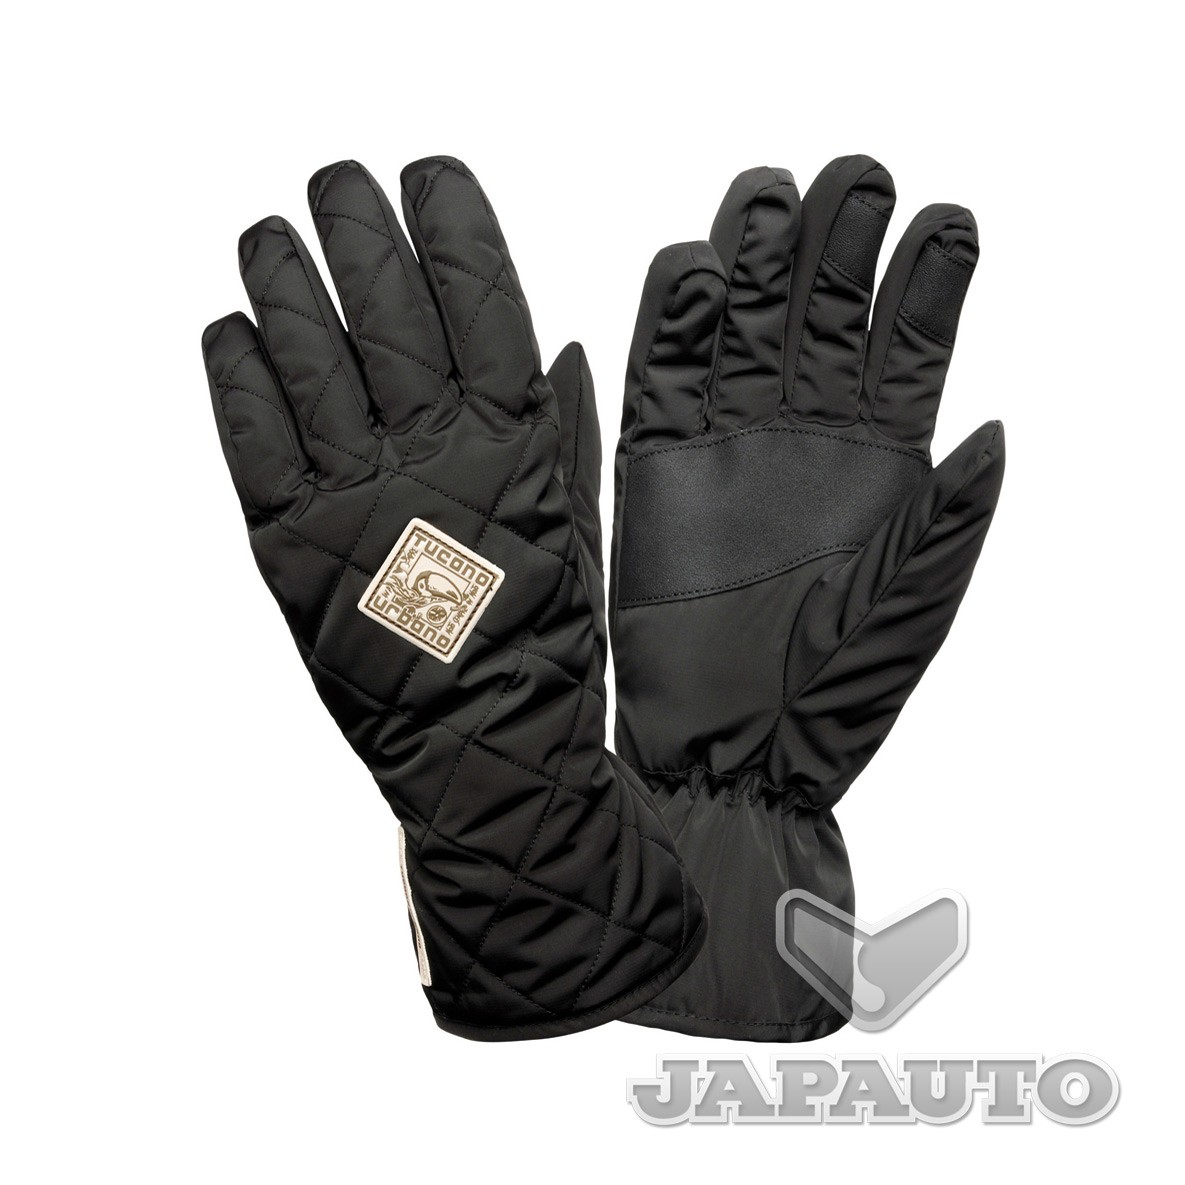 gants moto femme dainese. Black Bedroom Furniture Sets. Home Design Ideas